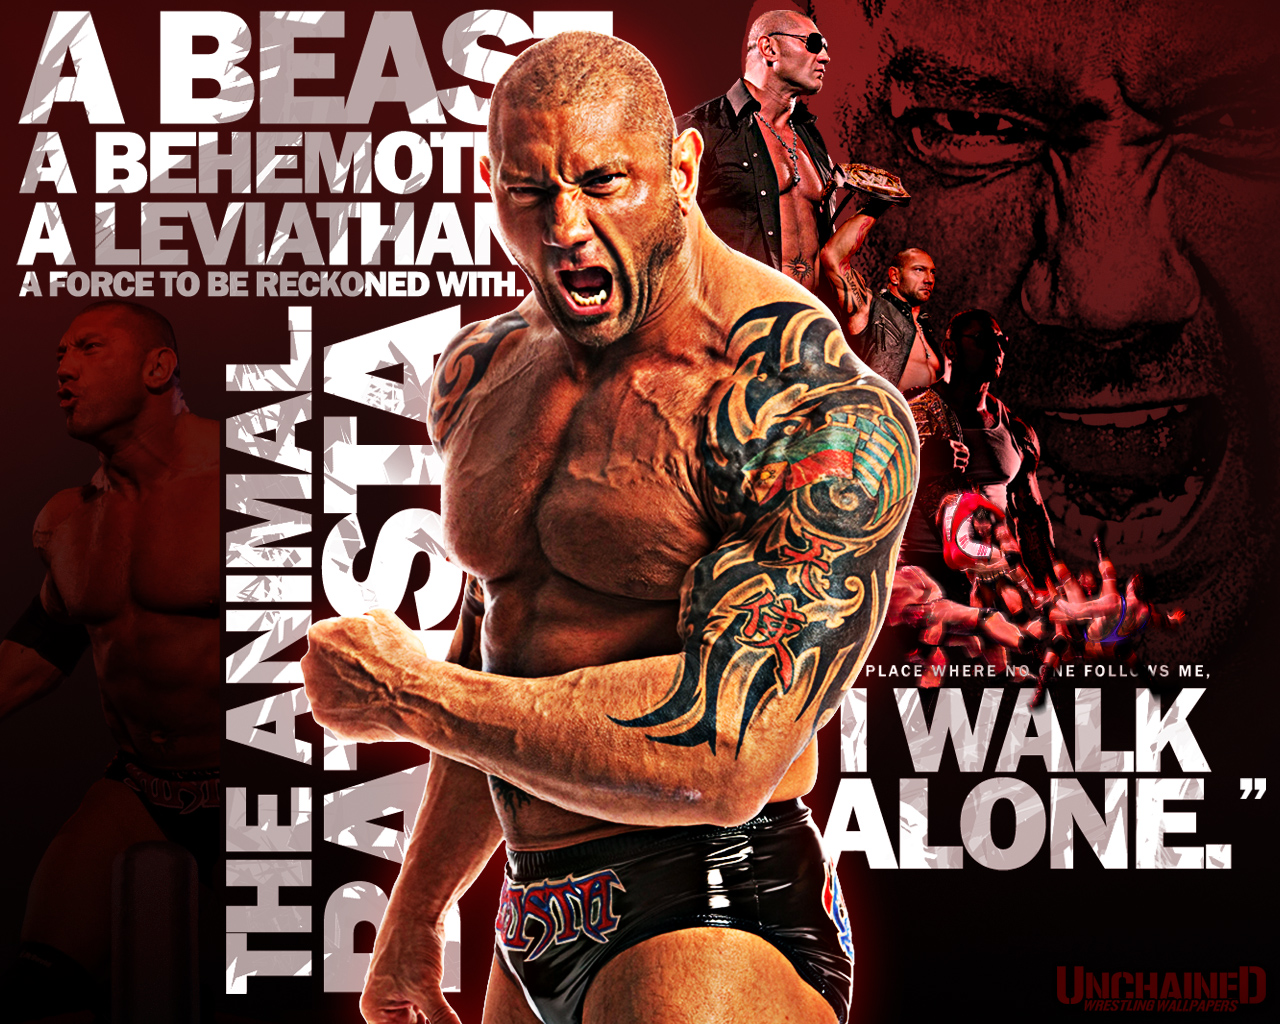 Free Download HQ A Beast Wrestling WWE Wallpaper Num. 4 : 1280 x 1024